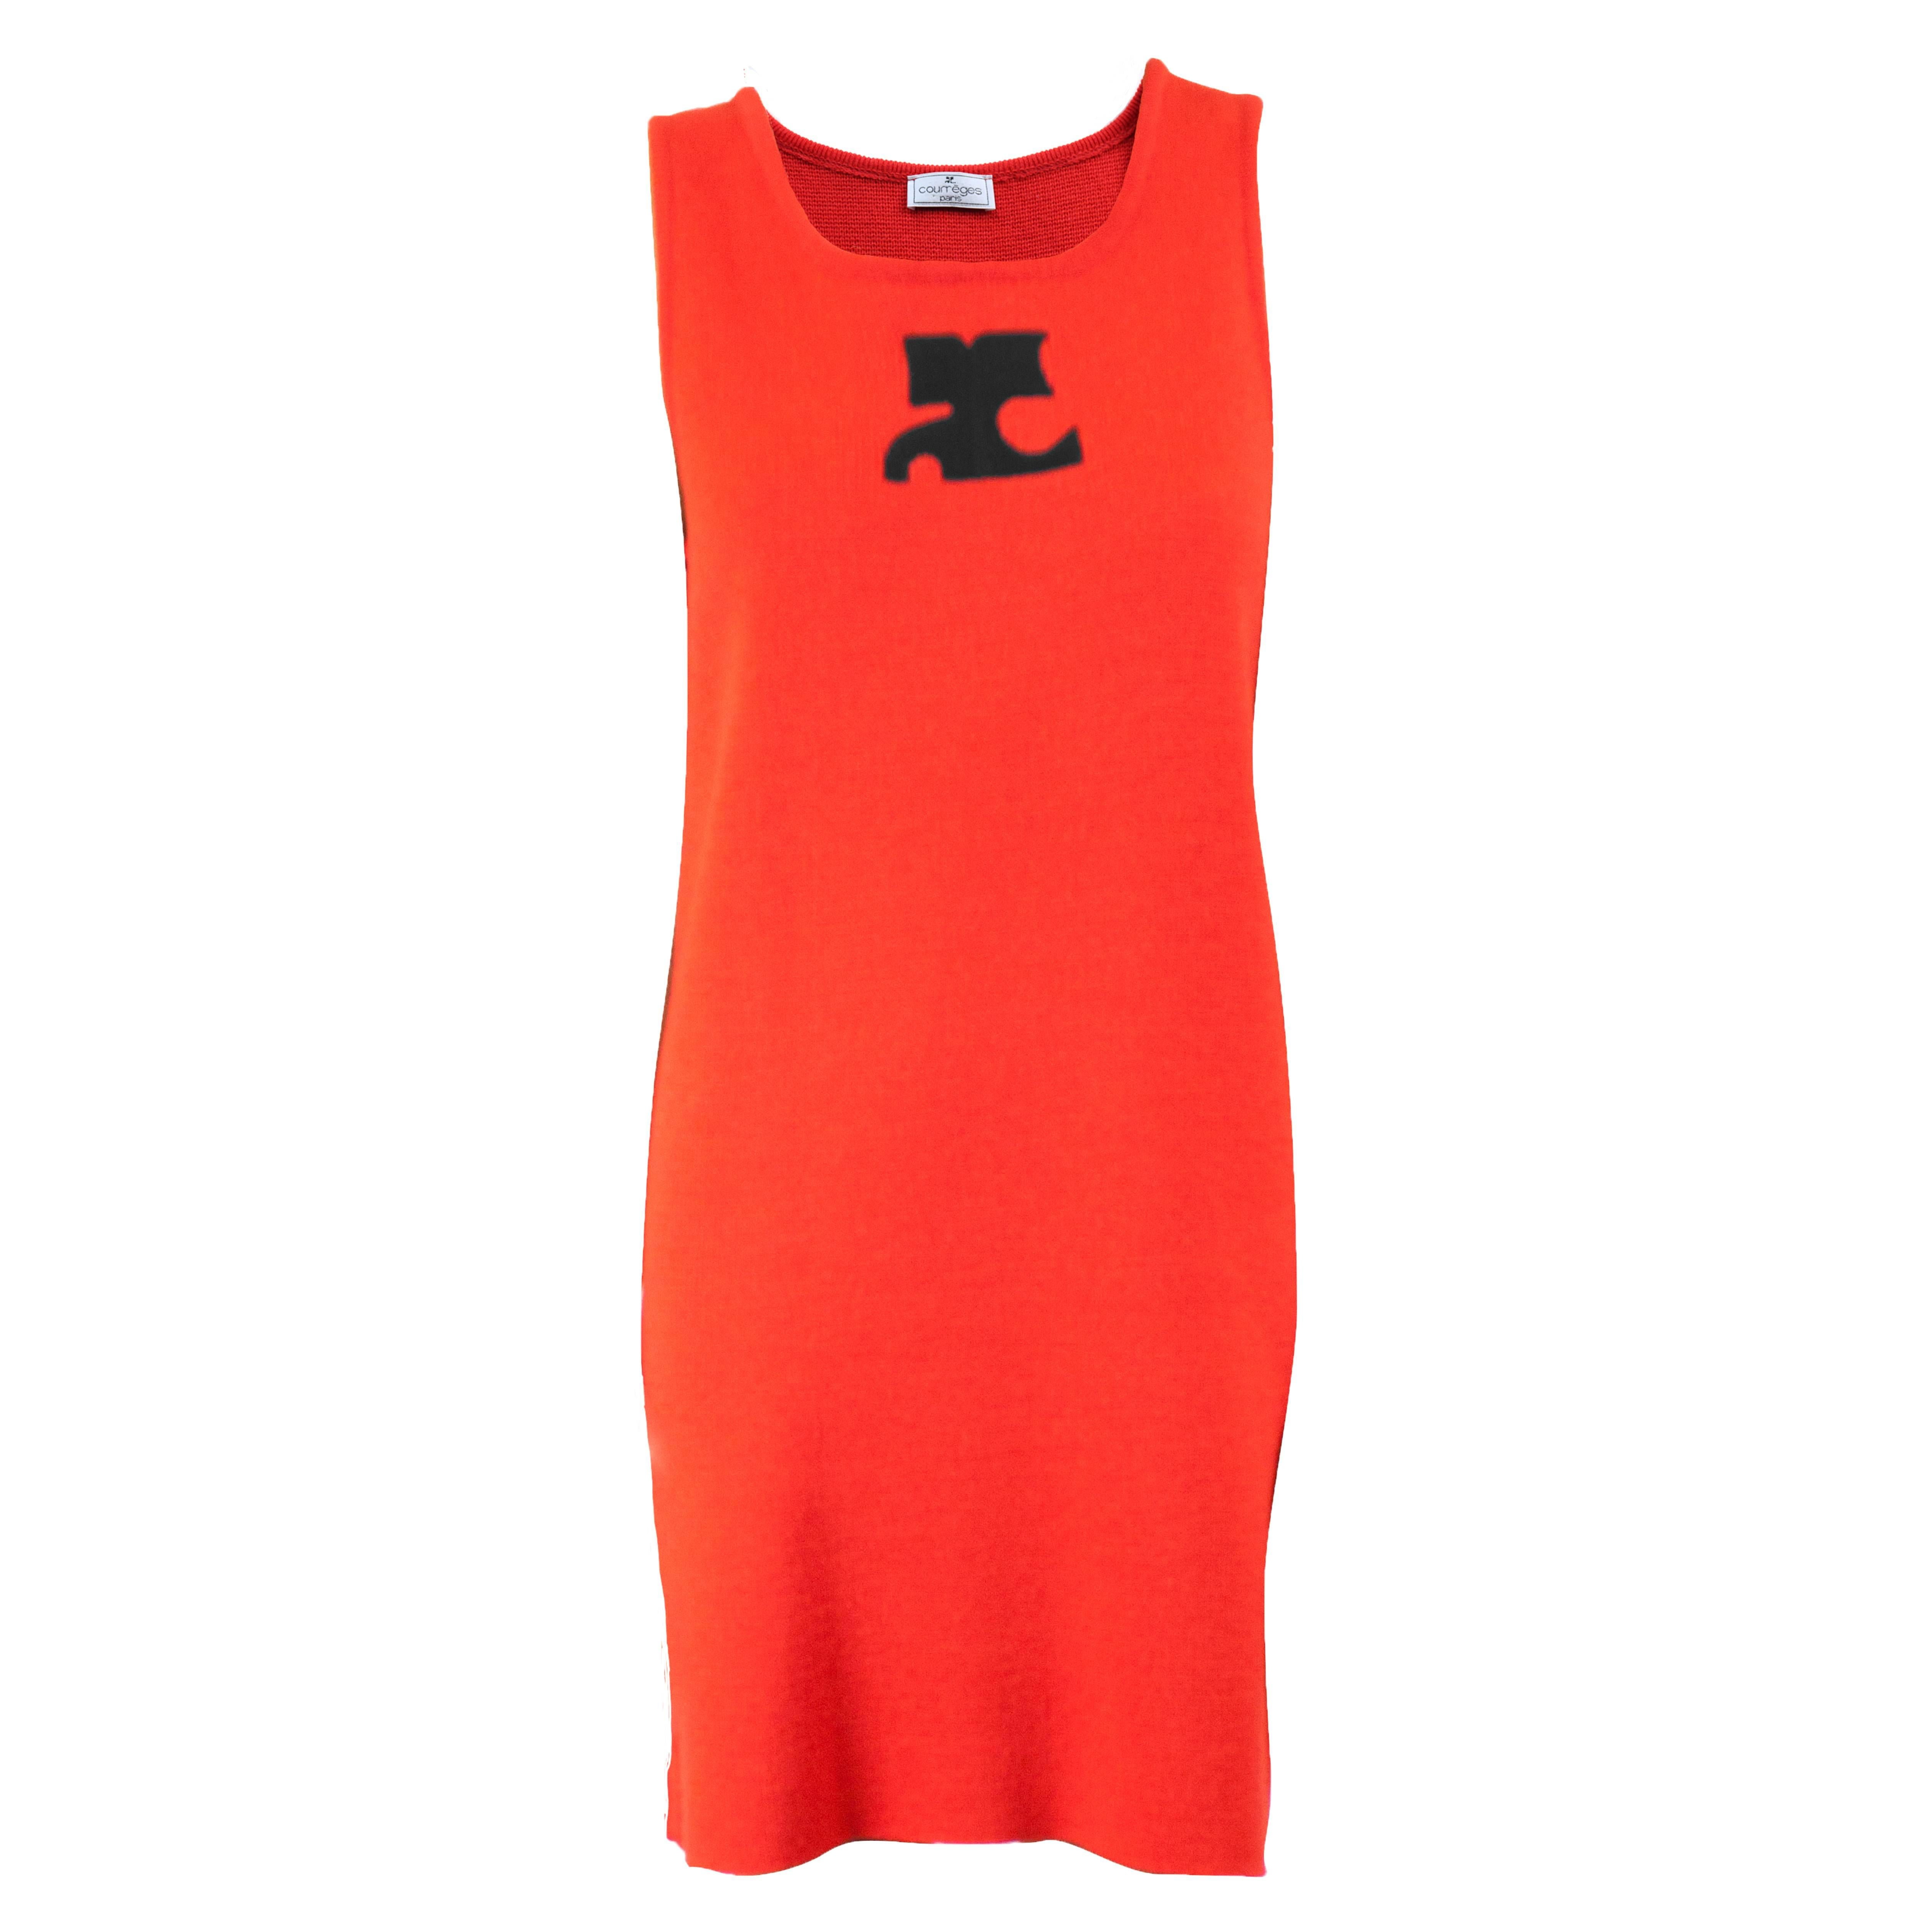 Courreges red knitted dress Circa 1980